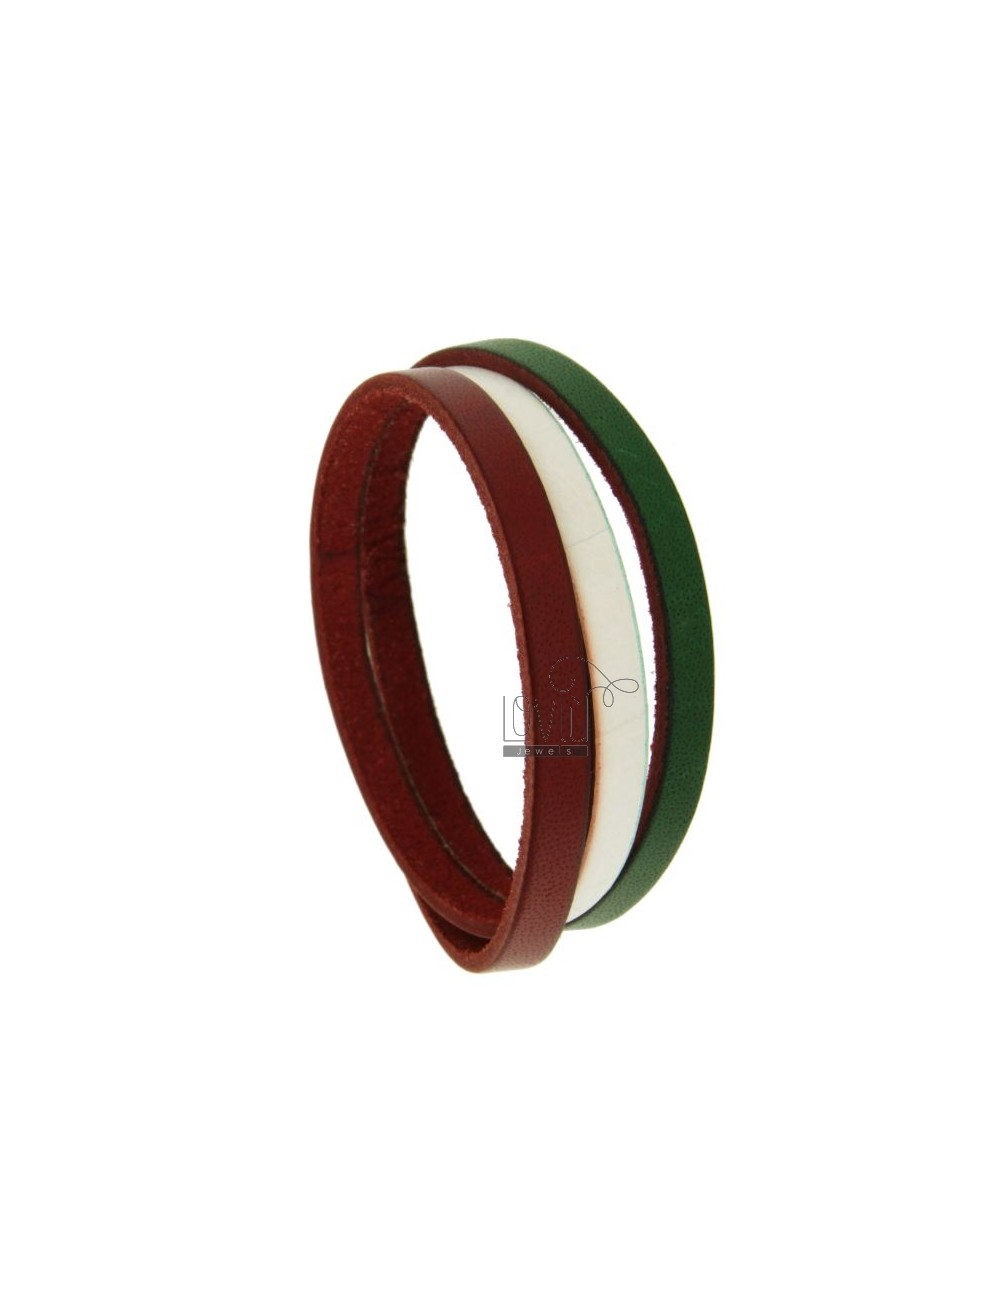 BRACELET IN LEATHER TRICOLORE GREEN WHITE AND RED METAL WITH CLOSURE